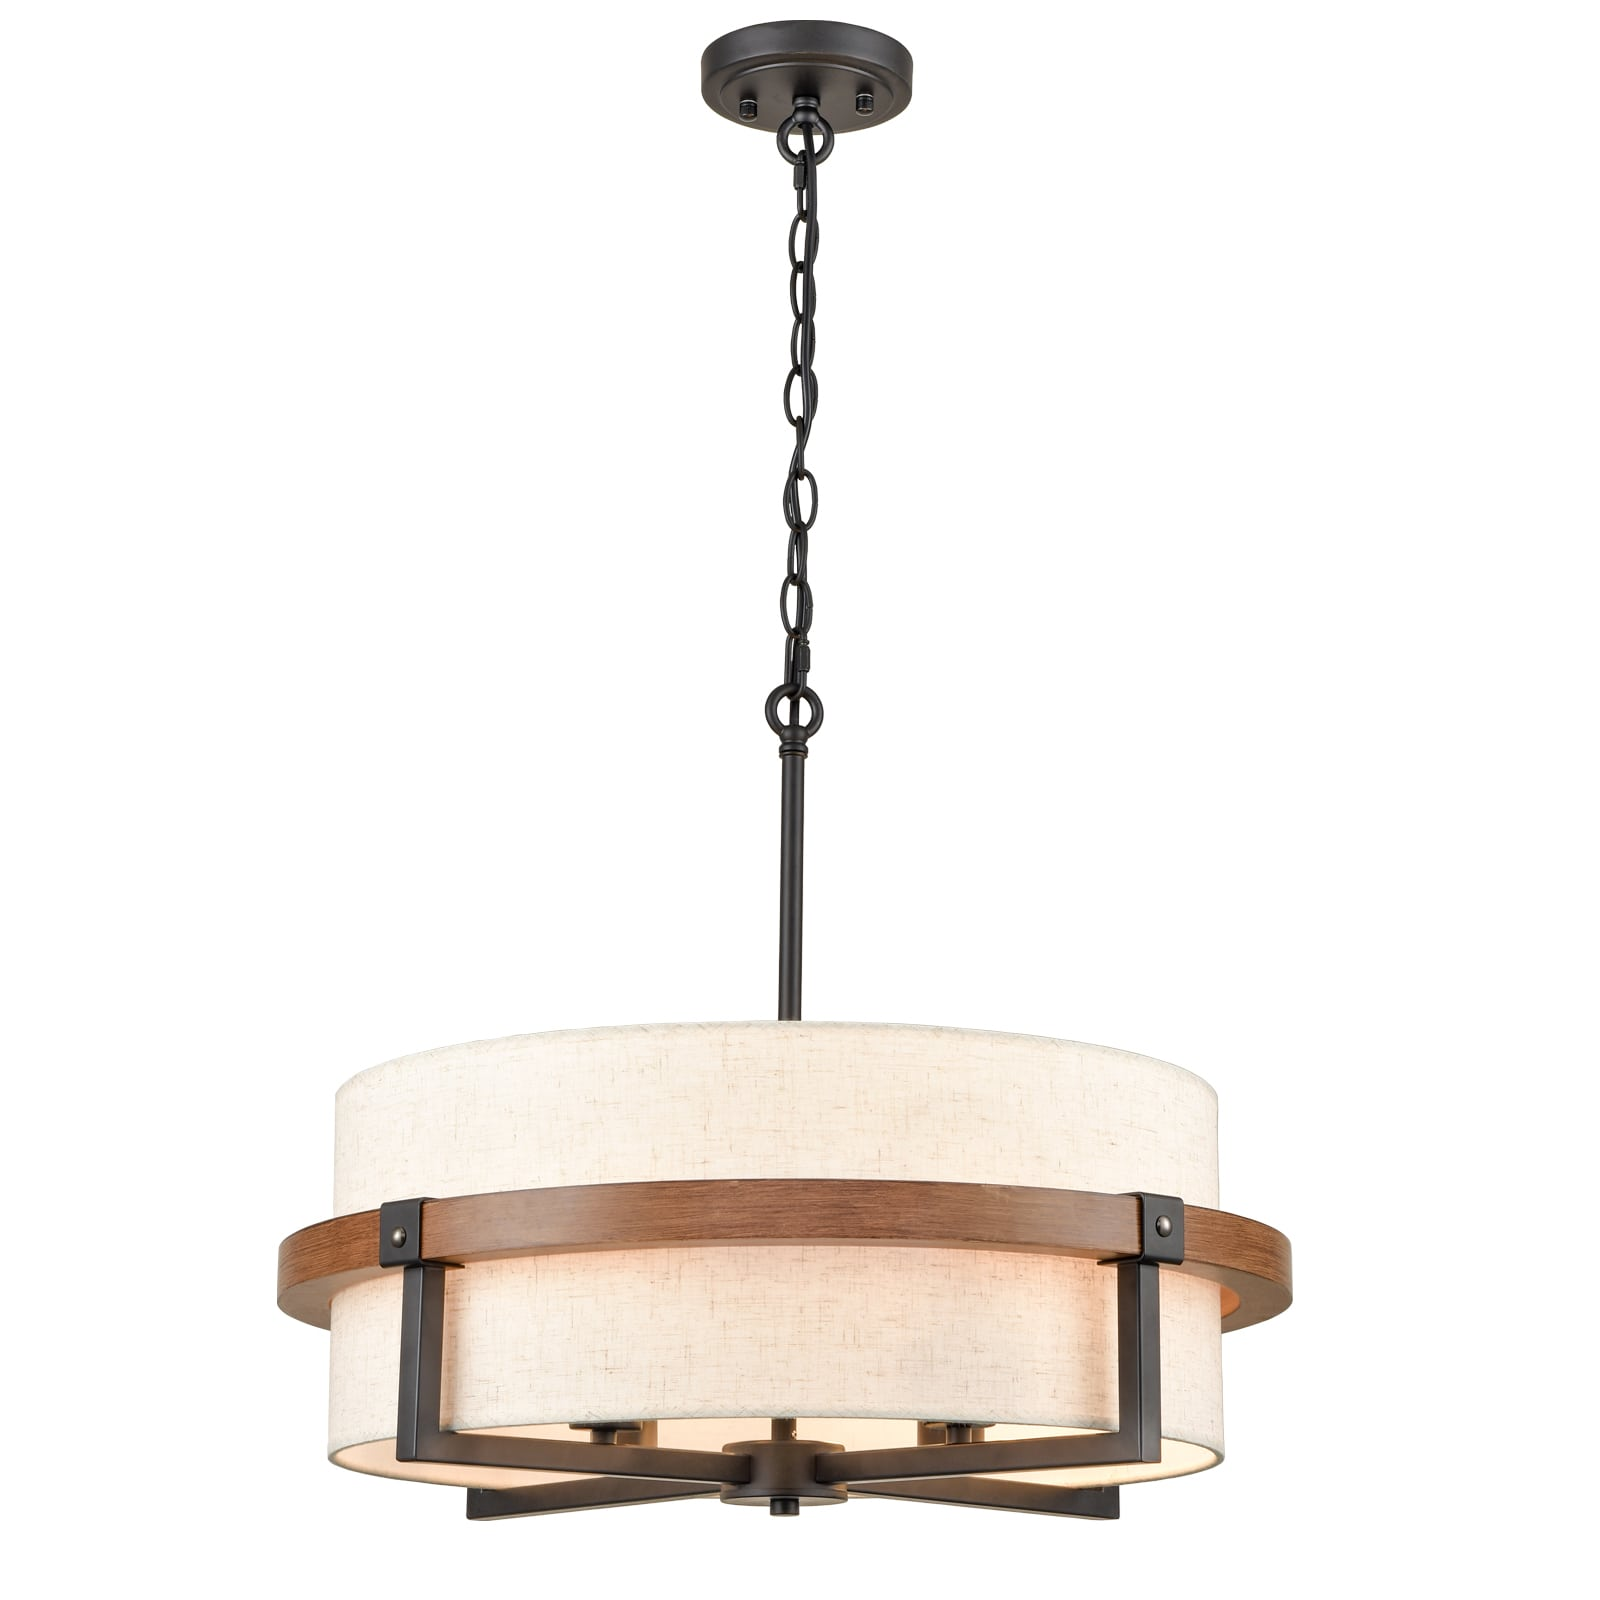 Rustic Drum Chandelier For Dining Room, Rustic Dining Room Chandeliers